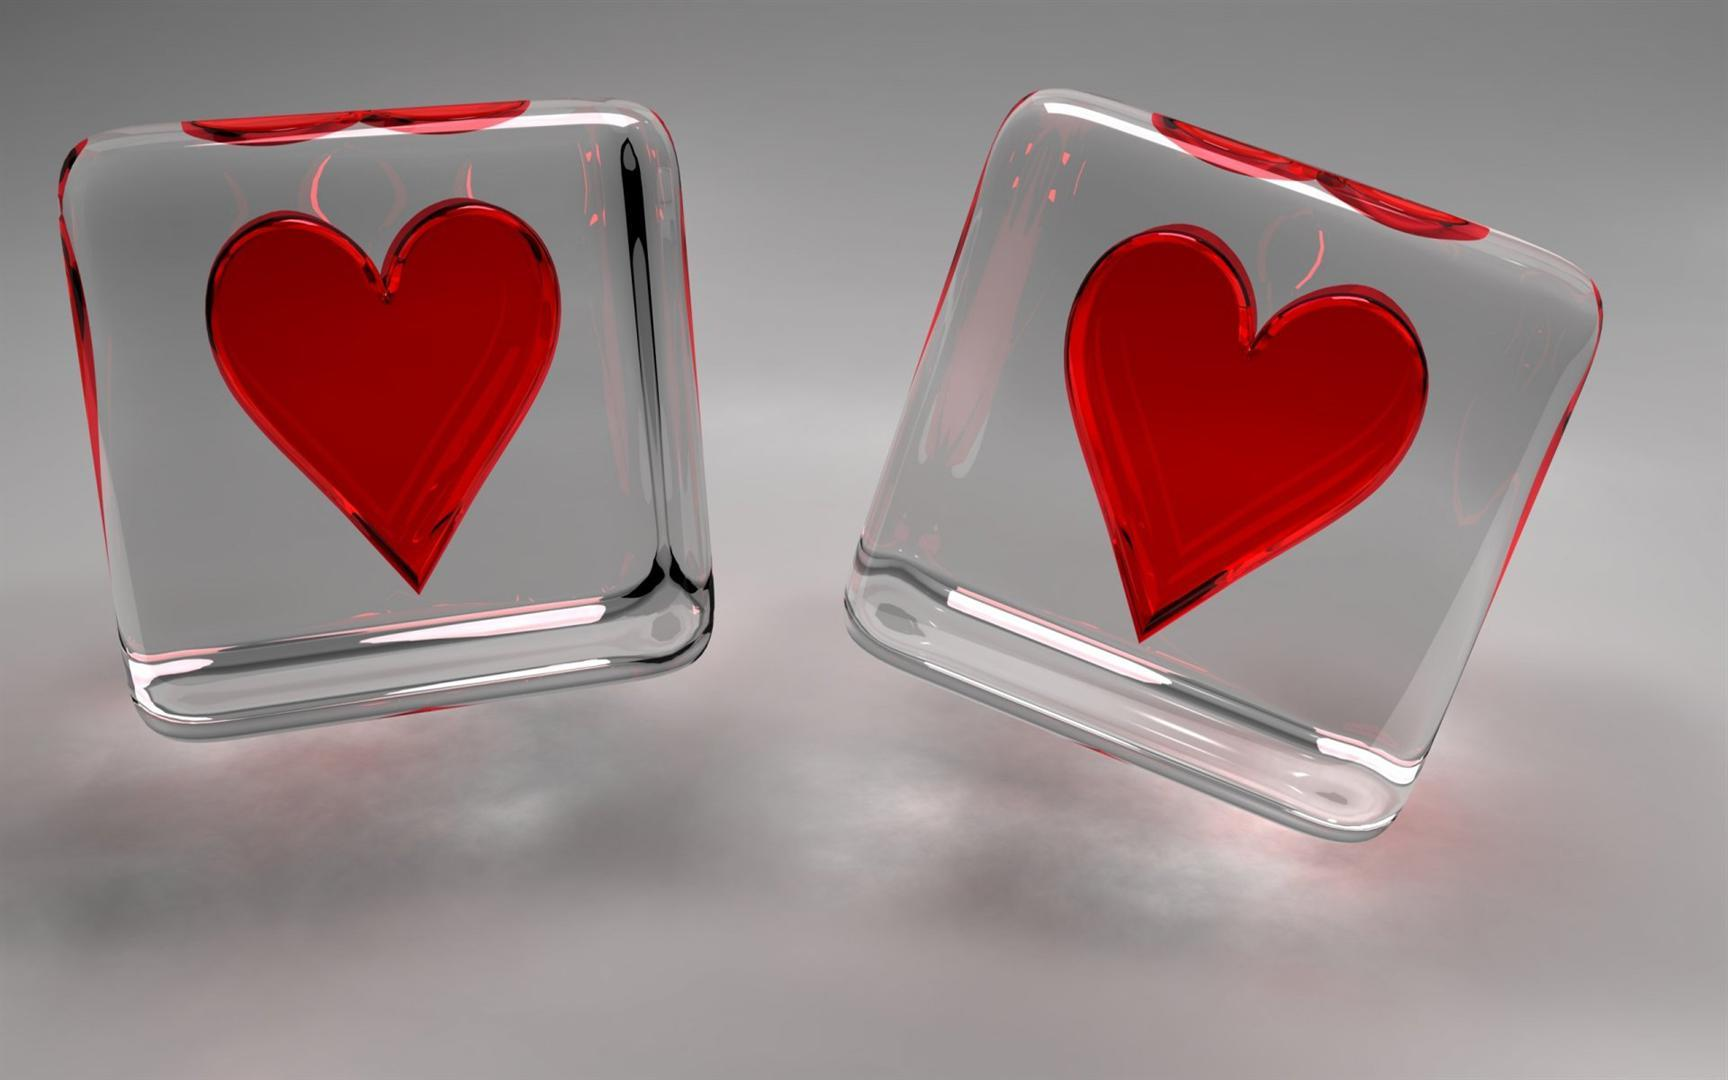 Love Wallpaper Hd 3d : 3d Love Wallpapers - Wallpaper cave